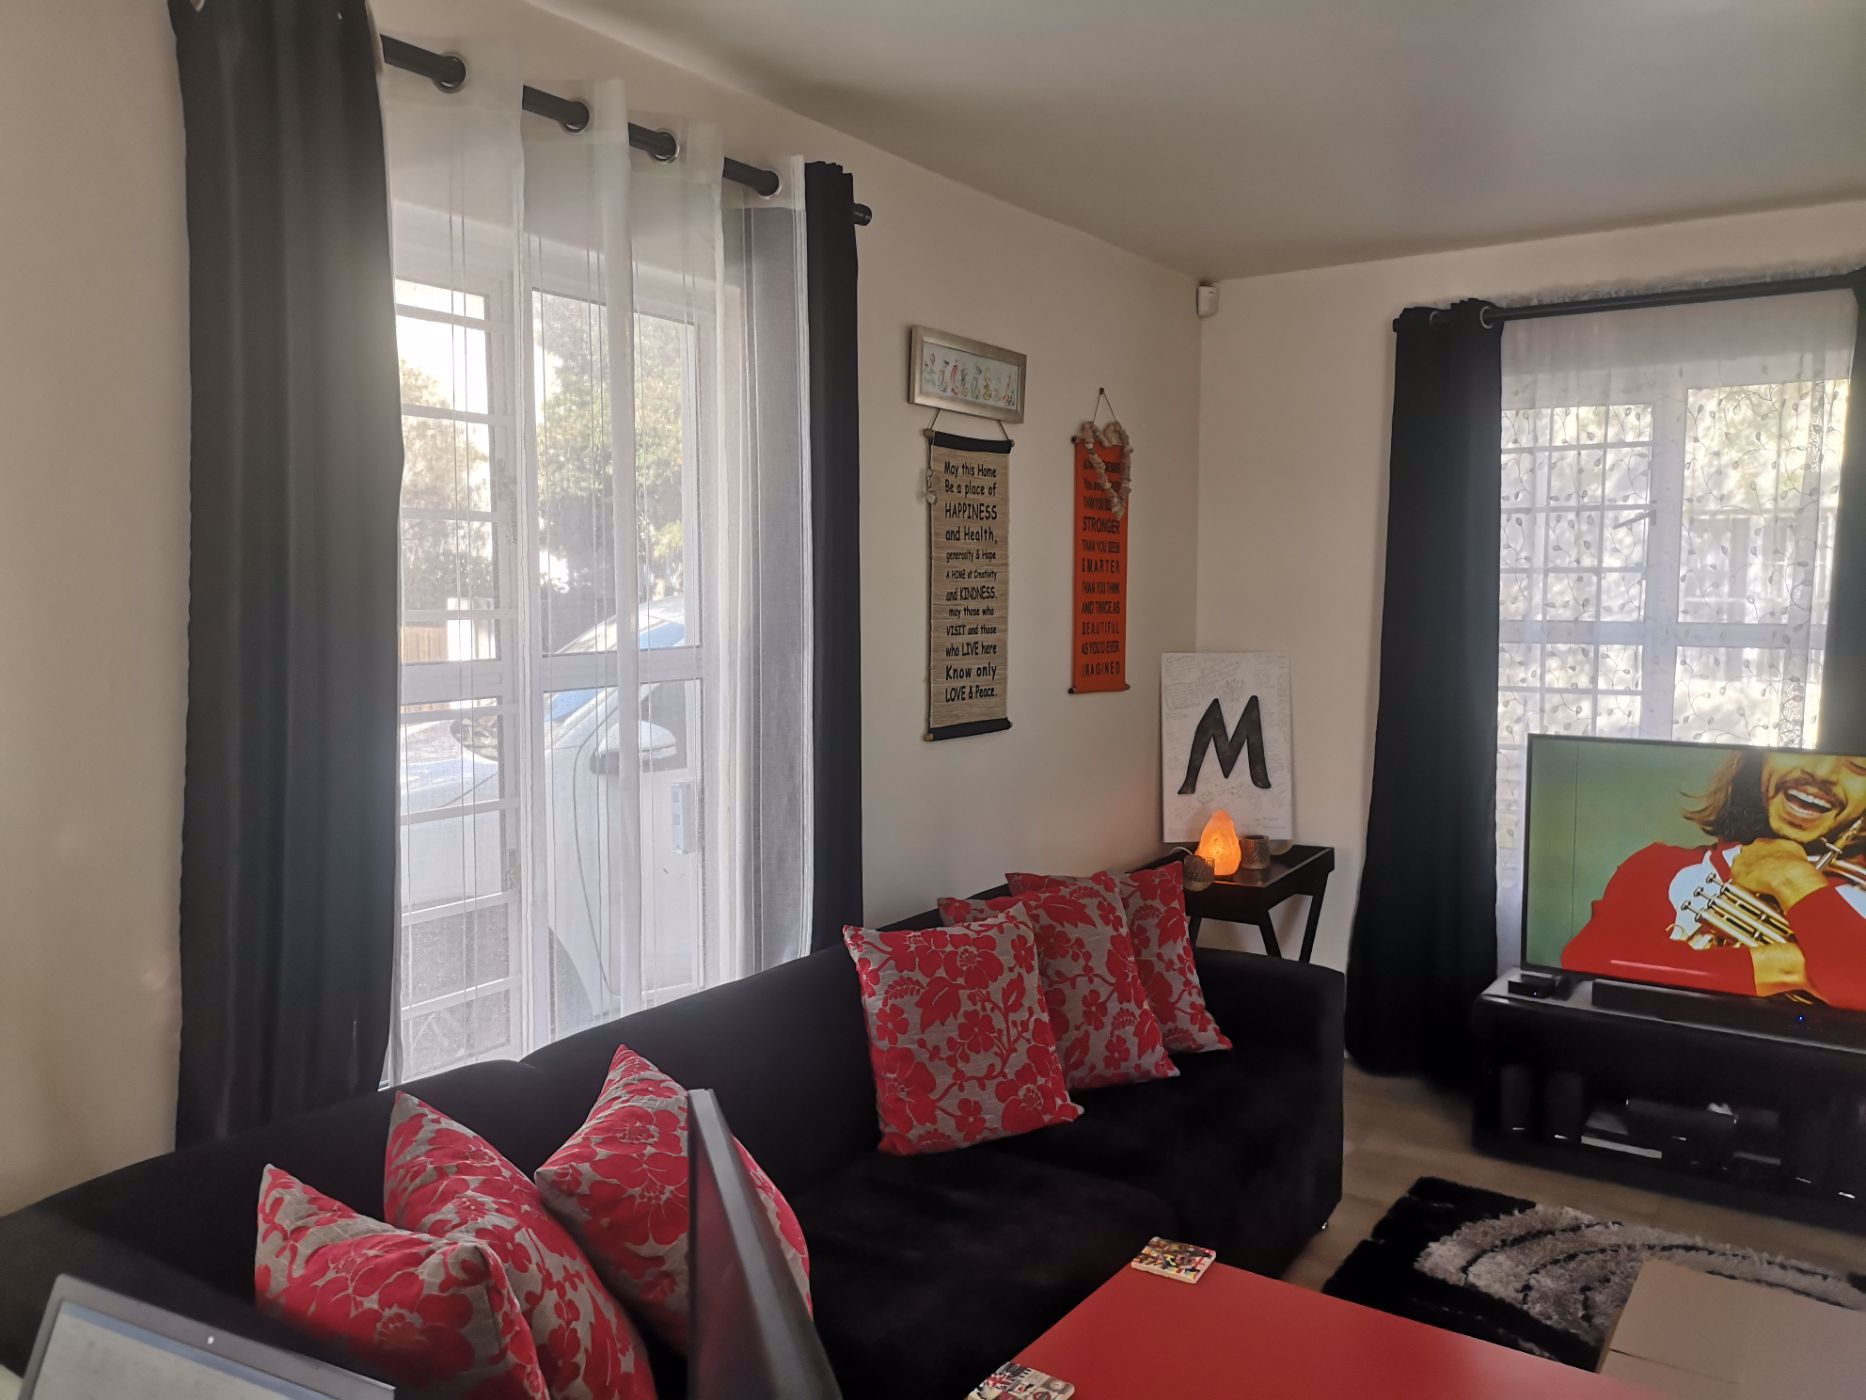 2 bedroom house to rent in Kenilworth (Cape Town)